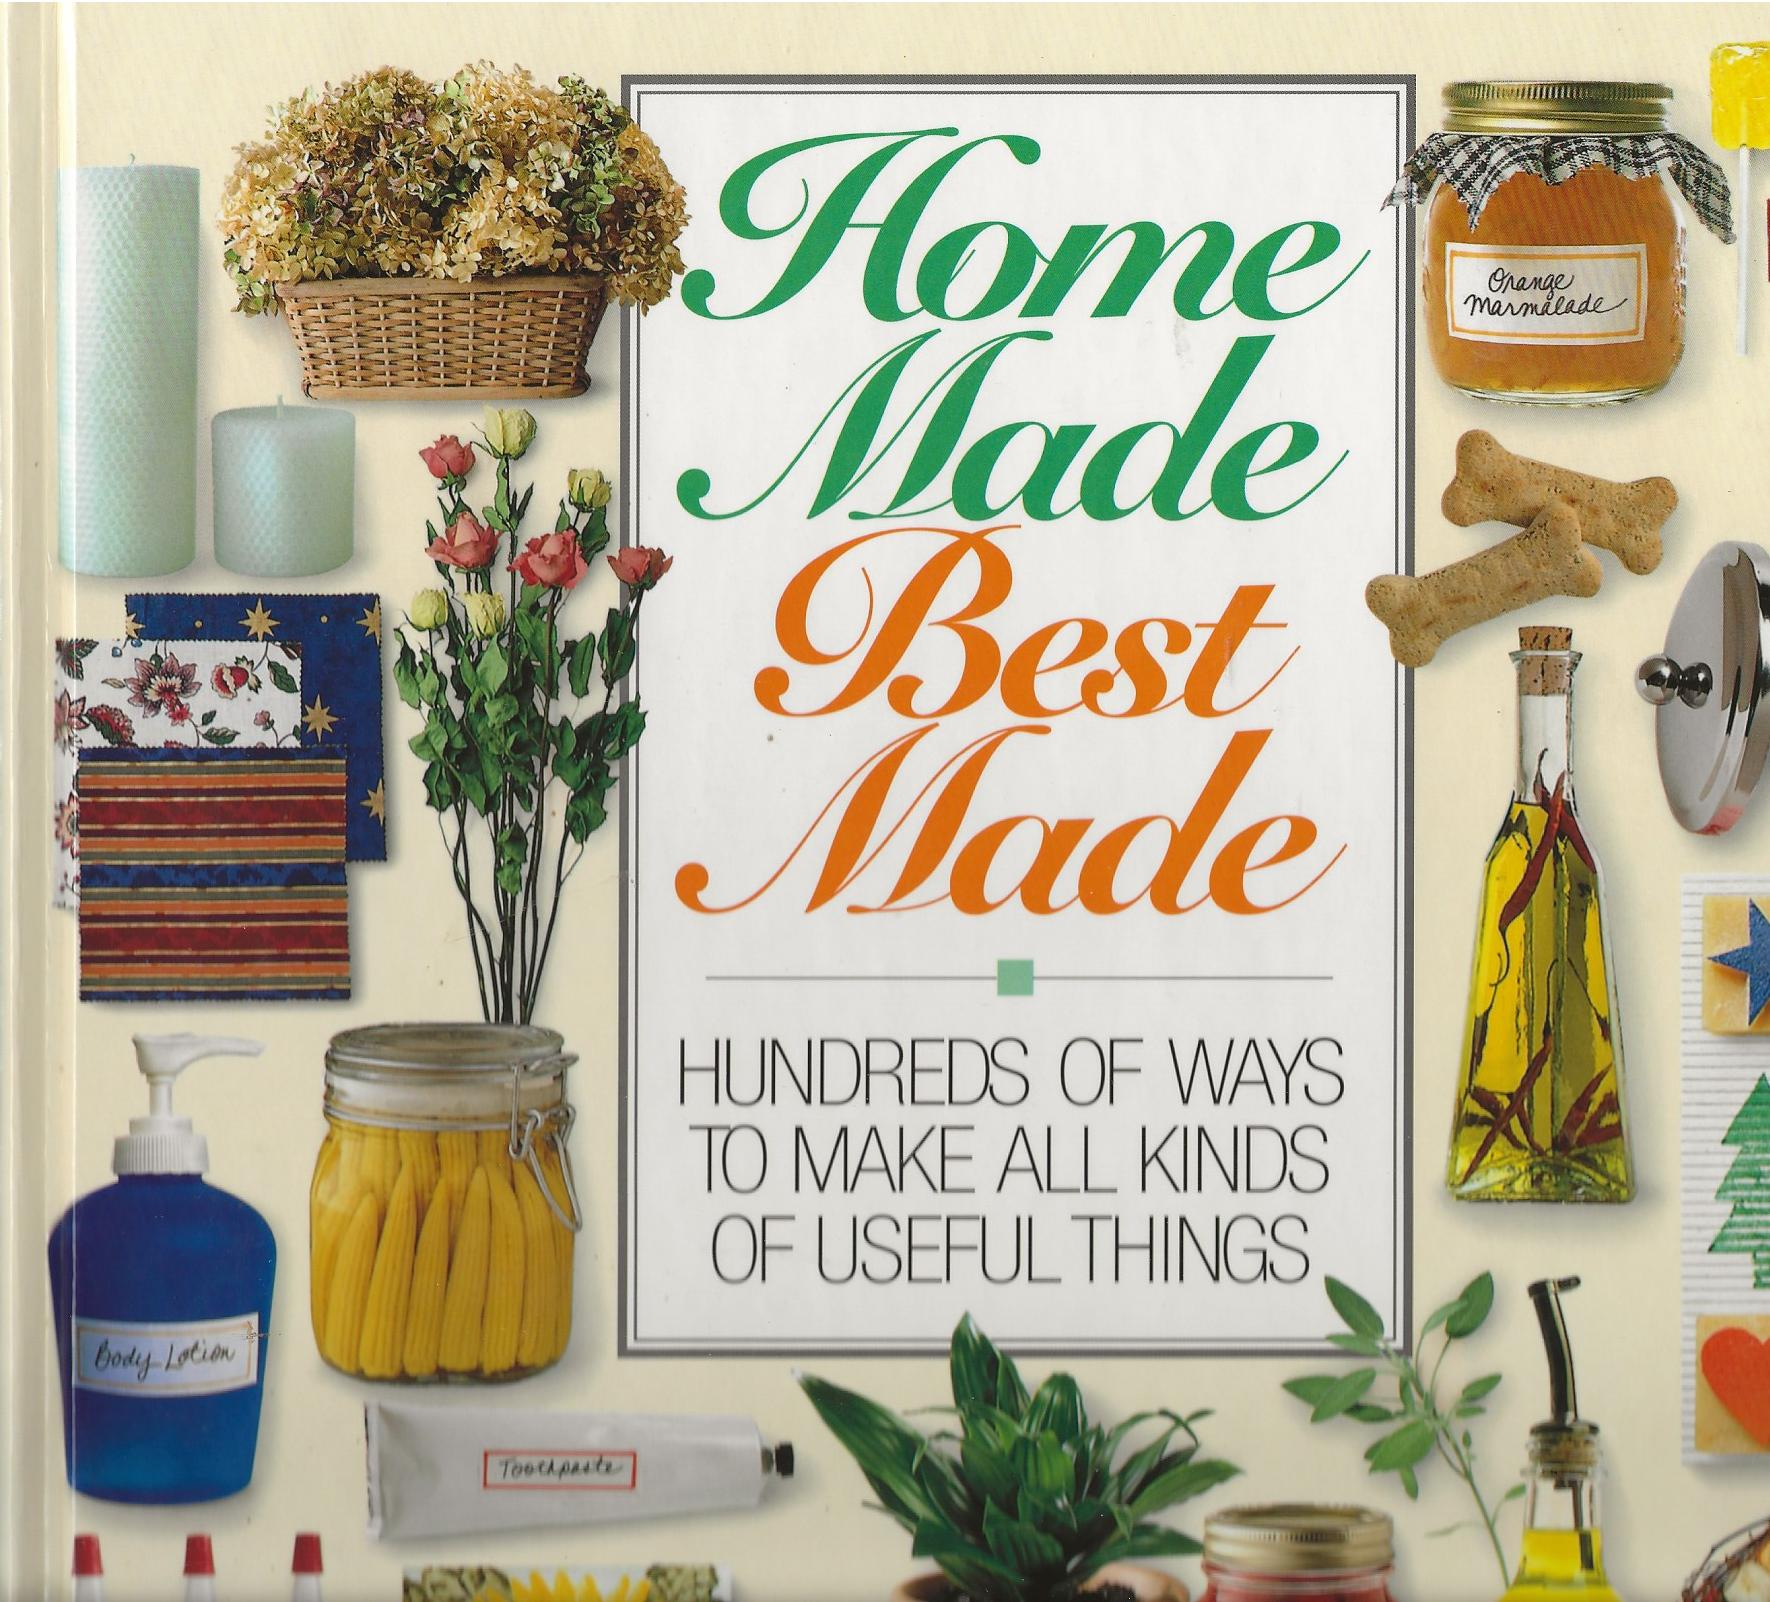 Image for HOME MADE BEST MADE